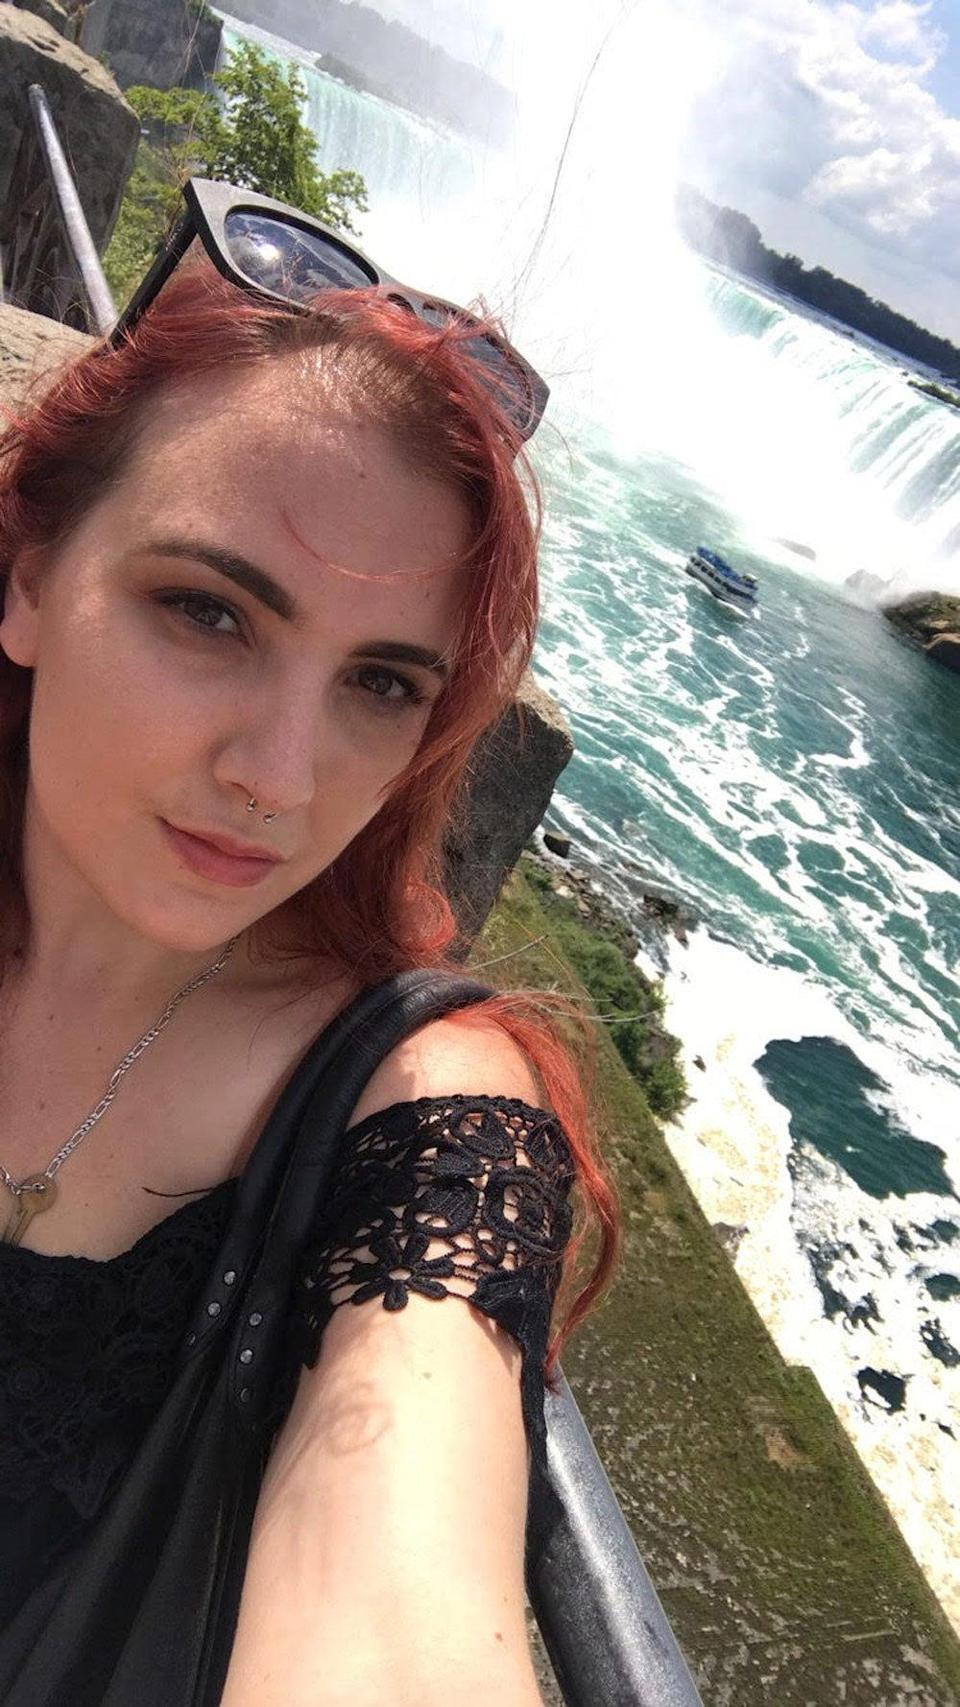 <h2>Natalia, 29, moved from Auckland, New Zealand to Toronto, Canada in July 2017<br></h2><br>In 2017 I was 26, I'd graduated university, I was perpetually single, didn't have many close friends, had been through a crappy breakup and just wanted to do something interesting with my life. I figured there'd never be any other time in my life it'd be that easy to do, so I just went for it. I also had a lot of issues with my mental health when I was in high school and since in Auckland everyone knows someone who knows you, starting over with no baggage felt really appealing to me.<br><br>I'd always fantasised about being a nobody in a big city as despite living in the biggest city in NZ, it still felt like a small town sometimes and I just wanted to be somewhere that felt like it catered to everyone. I also watched a ton of <em>Degrassi</em> growing up, and that honestly had a bigger influence on me considering Toronto than I like to admit.<br> <br>It was really hard at first. I spent the first week in a hostel and then moved to an Airbnb for a month while I tried to look for a place. Toronto has a very heated housing market and I was looking for a place for August/September. Despite my months of research I didn't consider that September is the start of the school year, since the school year in New Zealand is the opposite. I ended up competing with a whole city of students also trying to look for a place while I had no credit score, no job, no rental references and nobody local to use as a guarantor. I found a sublet for an overpriced illegal basement apartment on Craigslist where I had to duck to get to my bedroom because the ceilings were so low but I took it because I was just so glad I'd found a place. I was genuinely questioning if I'd have to go home due to not being able to find one.<br><br>Finding a job was also hard as most people wanted 'Canadian experience' which I clearly had none of, and so I was at the mercy of recruitment agencies where I was paid $14 an h